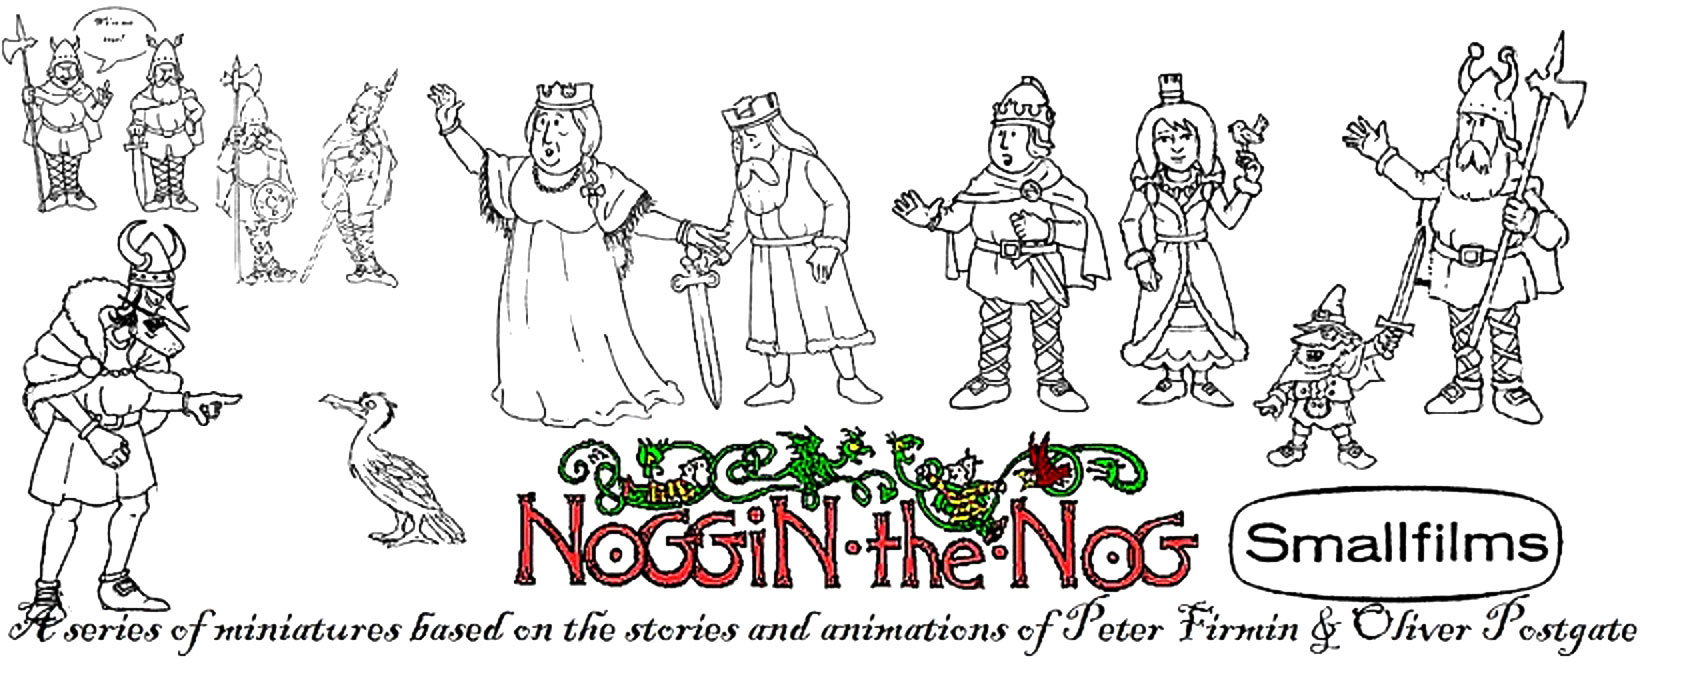 noggin-the-nog-drawing